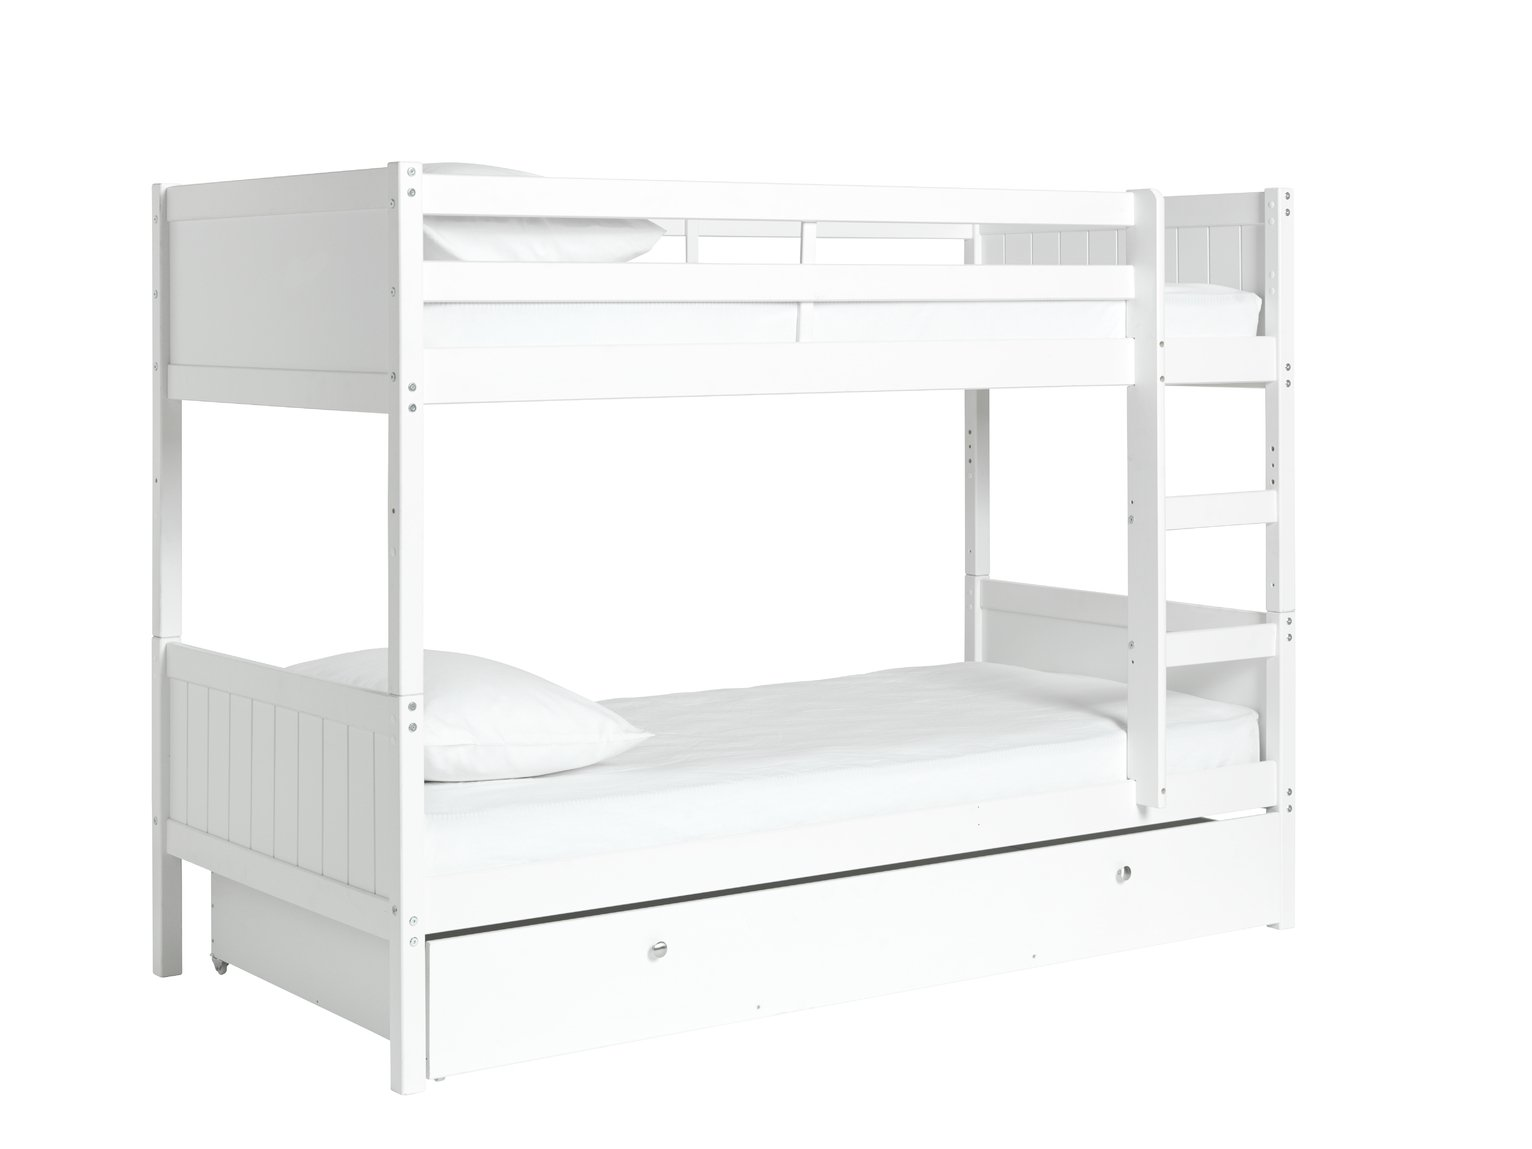 Buy HOME Detachable Single Bunk Bed Frame with Storage White at